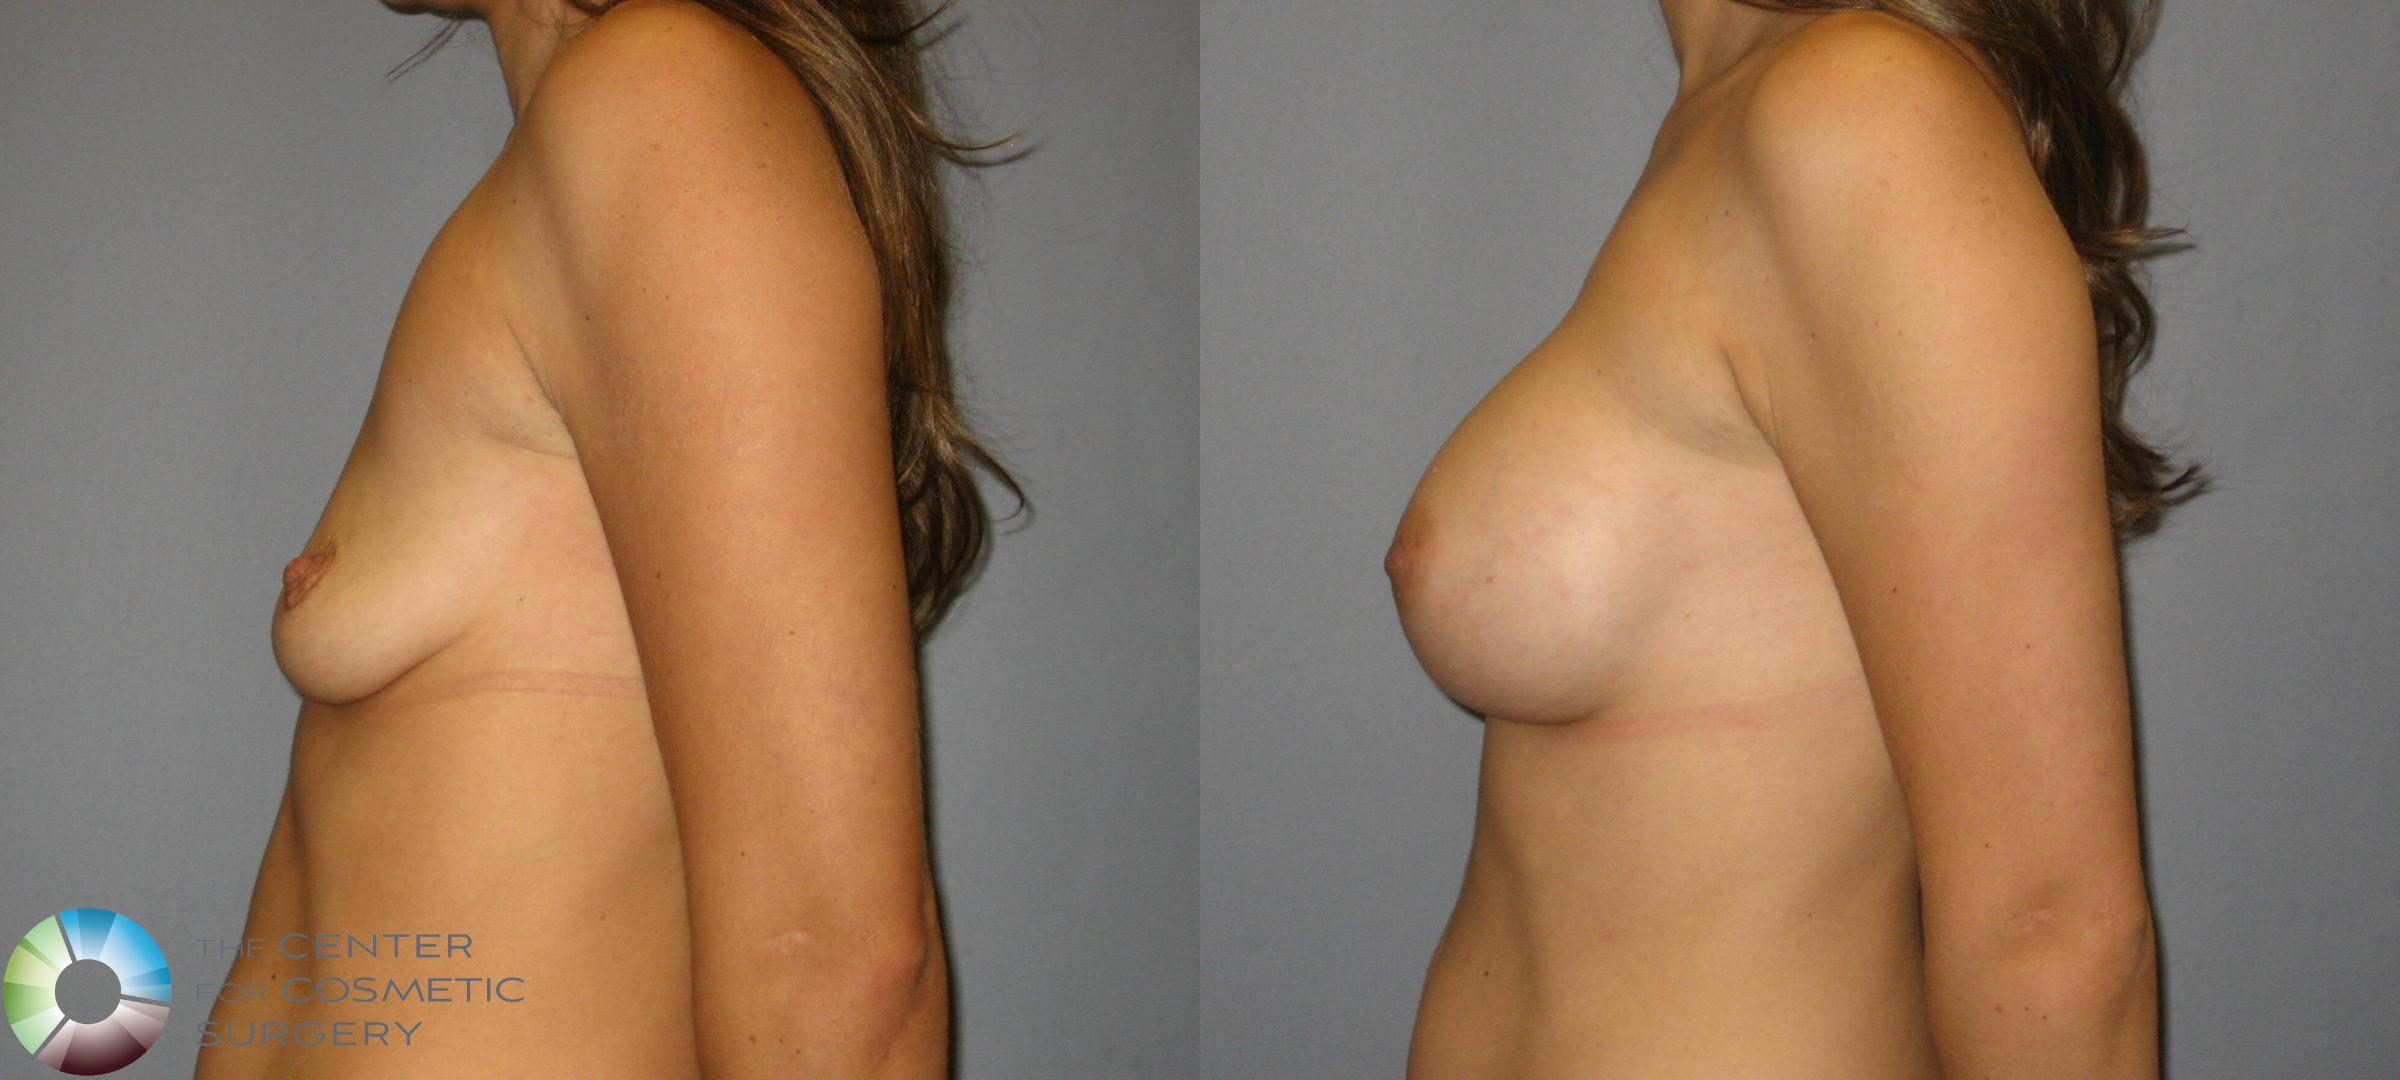 Breast Augmentation Case 357 Before & After View #3 | Golden, CO | The Center for Cosmetic Surgery